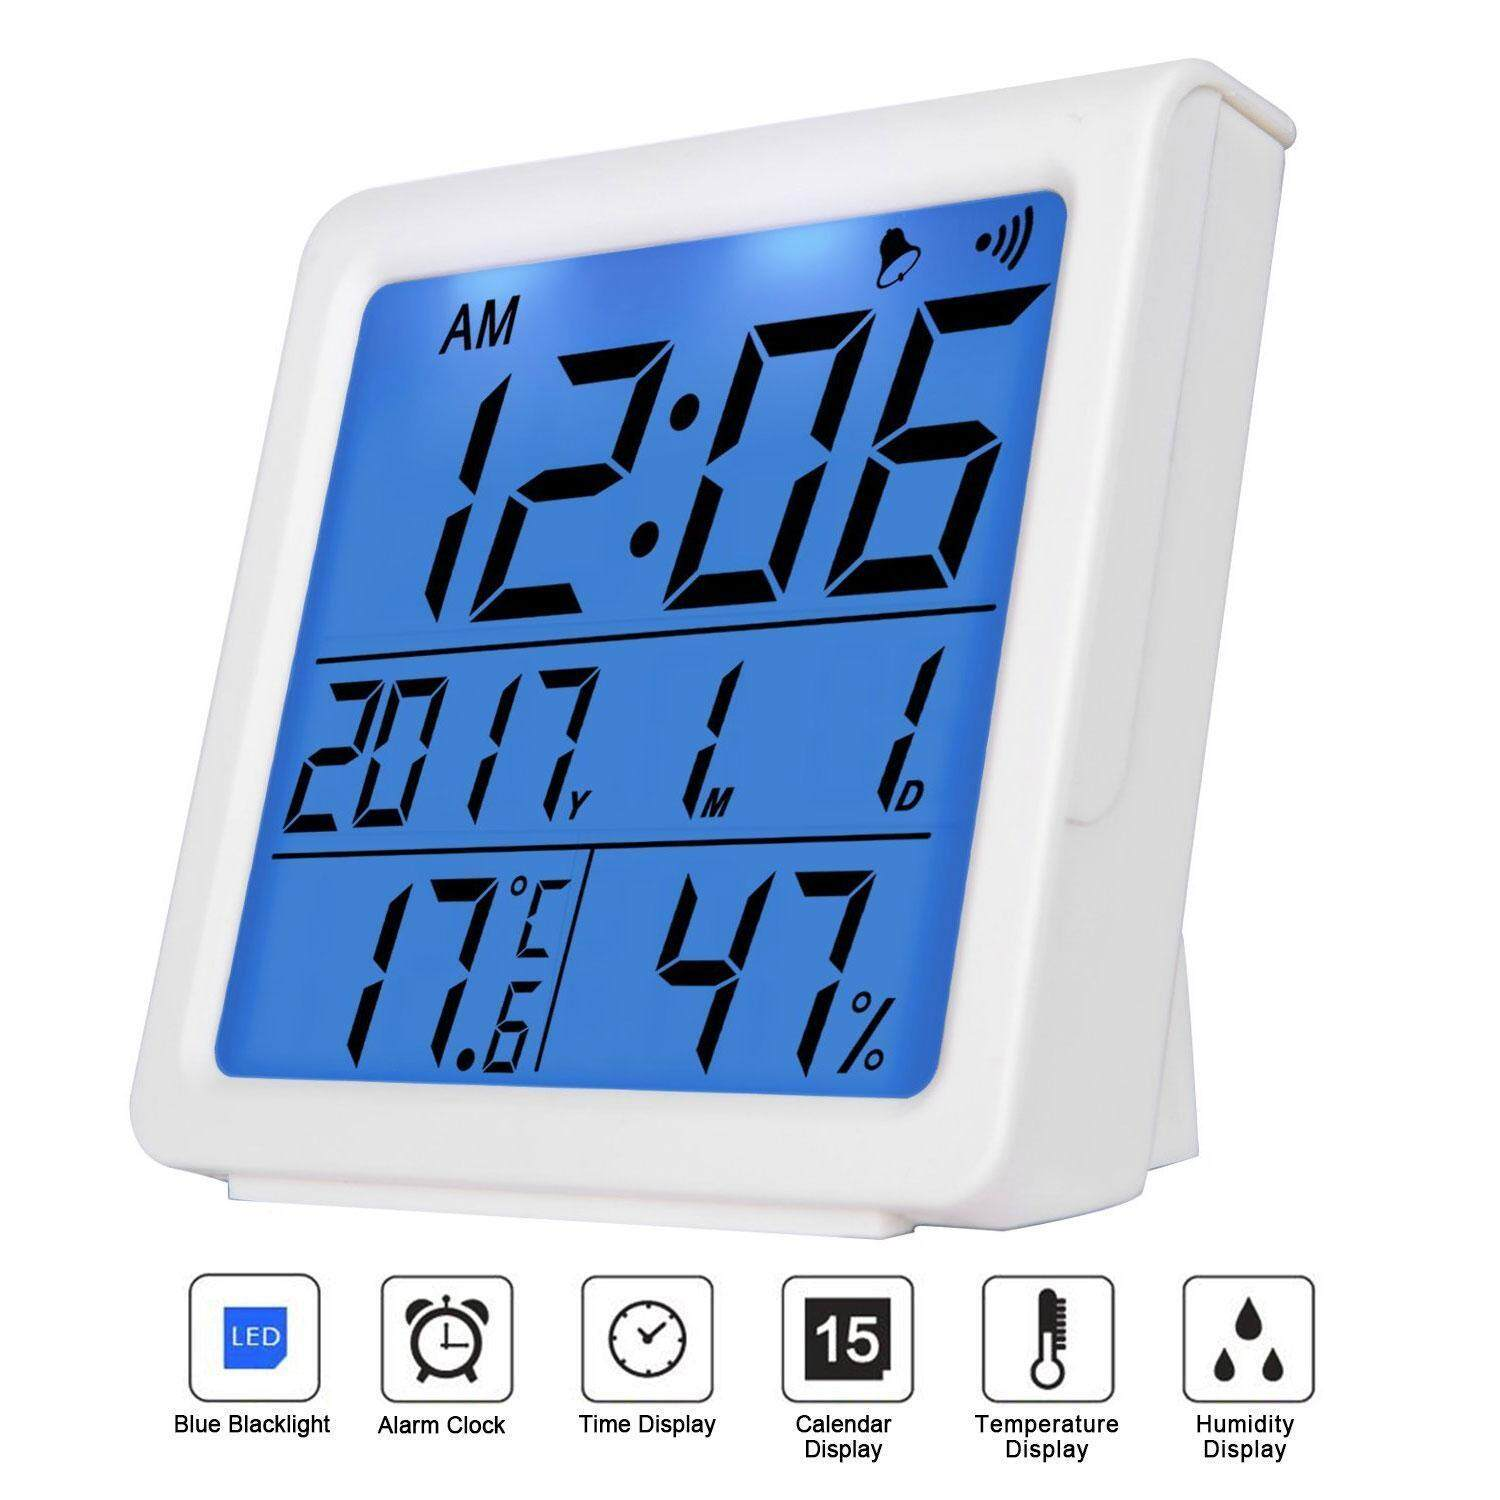 Rodeal Digital Hygrometer Humidity Meters Wireless Temperature Monitor Thermometer Alarm Clock Indoor With Backlight, Table Standing ,℃/℉ Switch,for Home Office Baby Room - White - intl